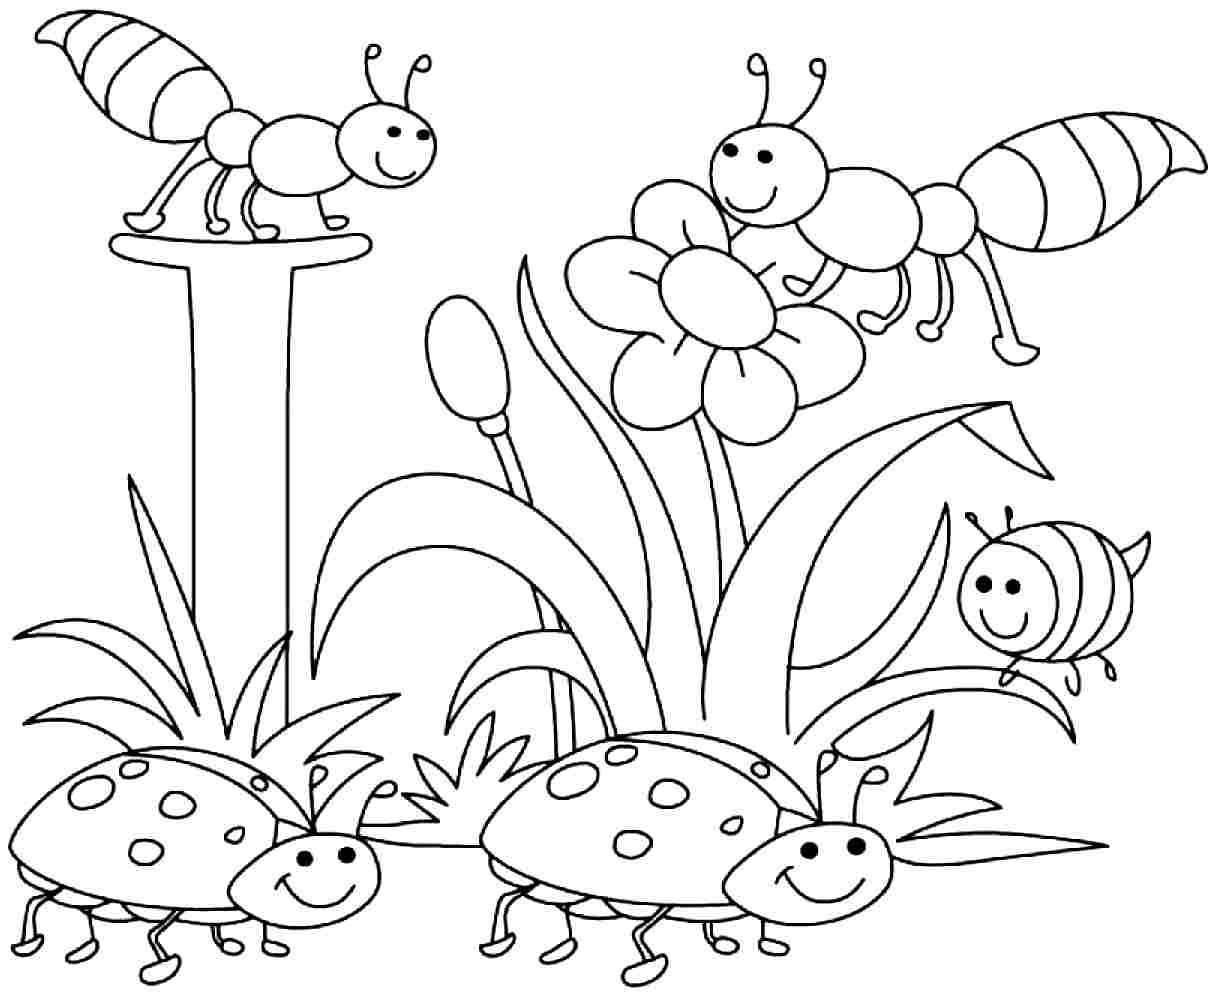 Free printable coloring pages graduation - Kindergarten Graduation Colouring Pages Springtime Coloring Pages